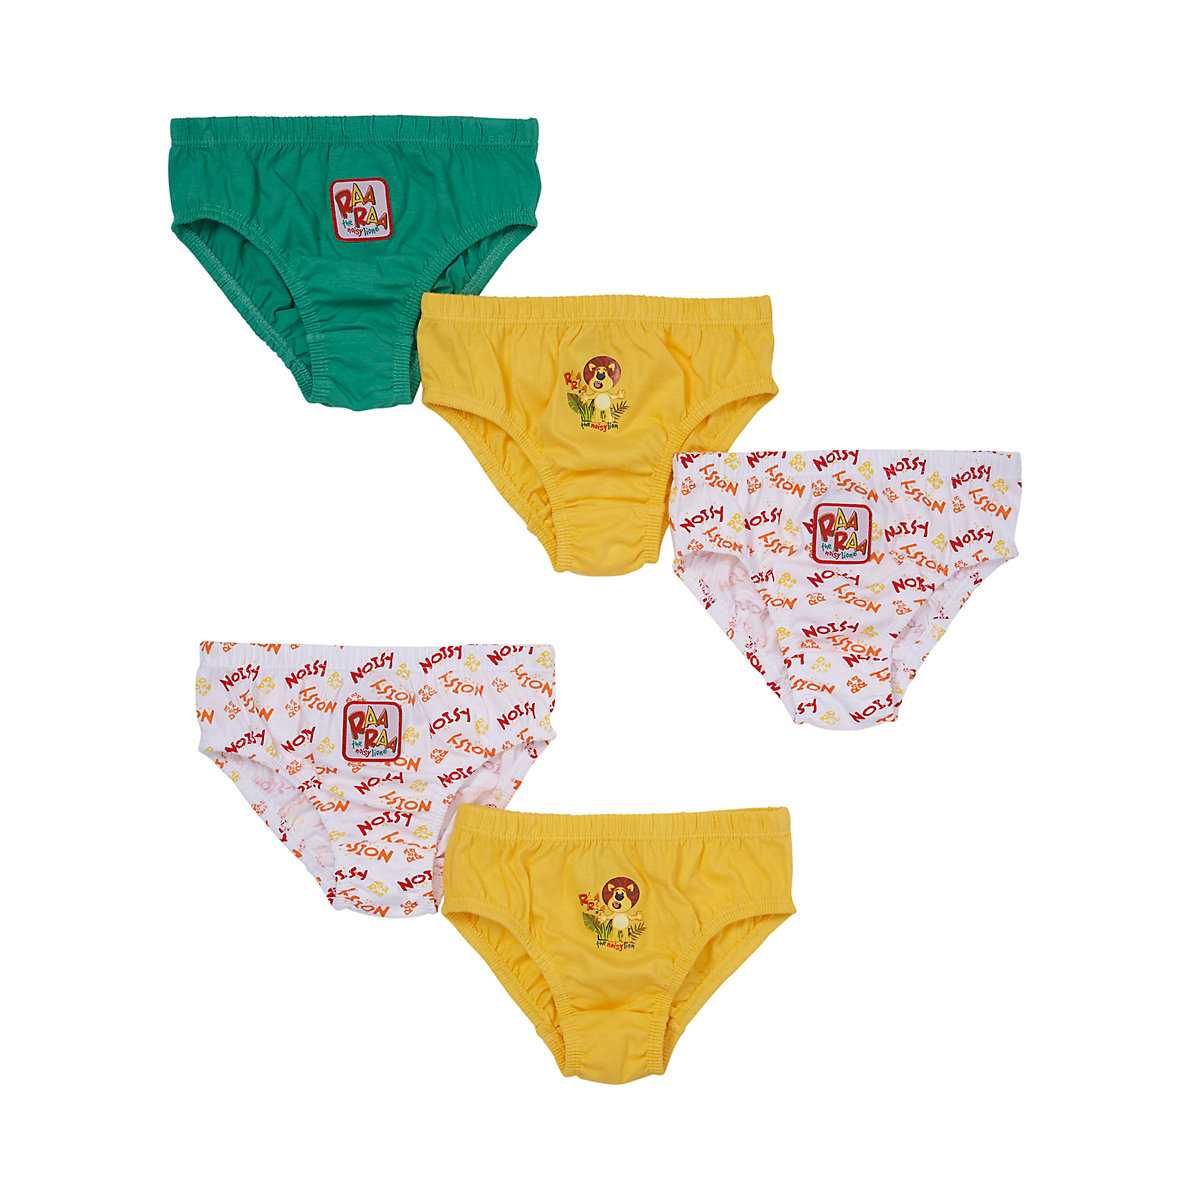 Raa Raa The Noisy Lion Briefs - 5 Pack - Lion Gifts